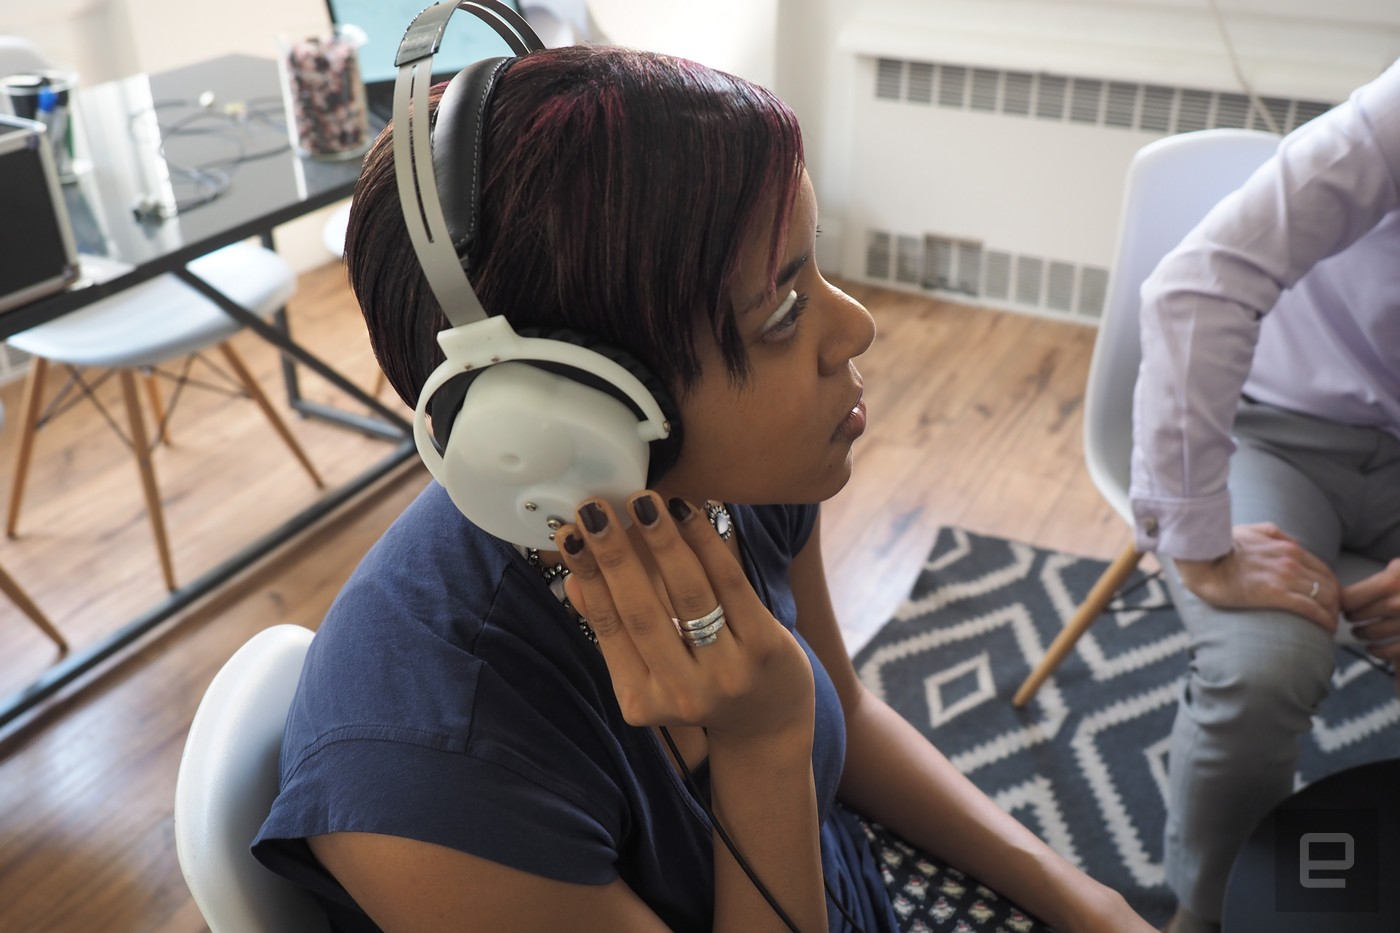 The Nura Headphones Craft The Perfect Audio For Your Ear